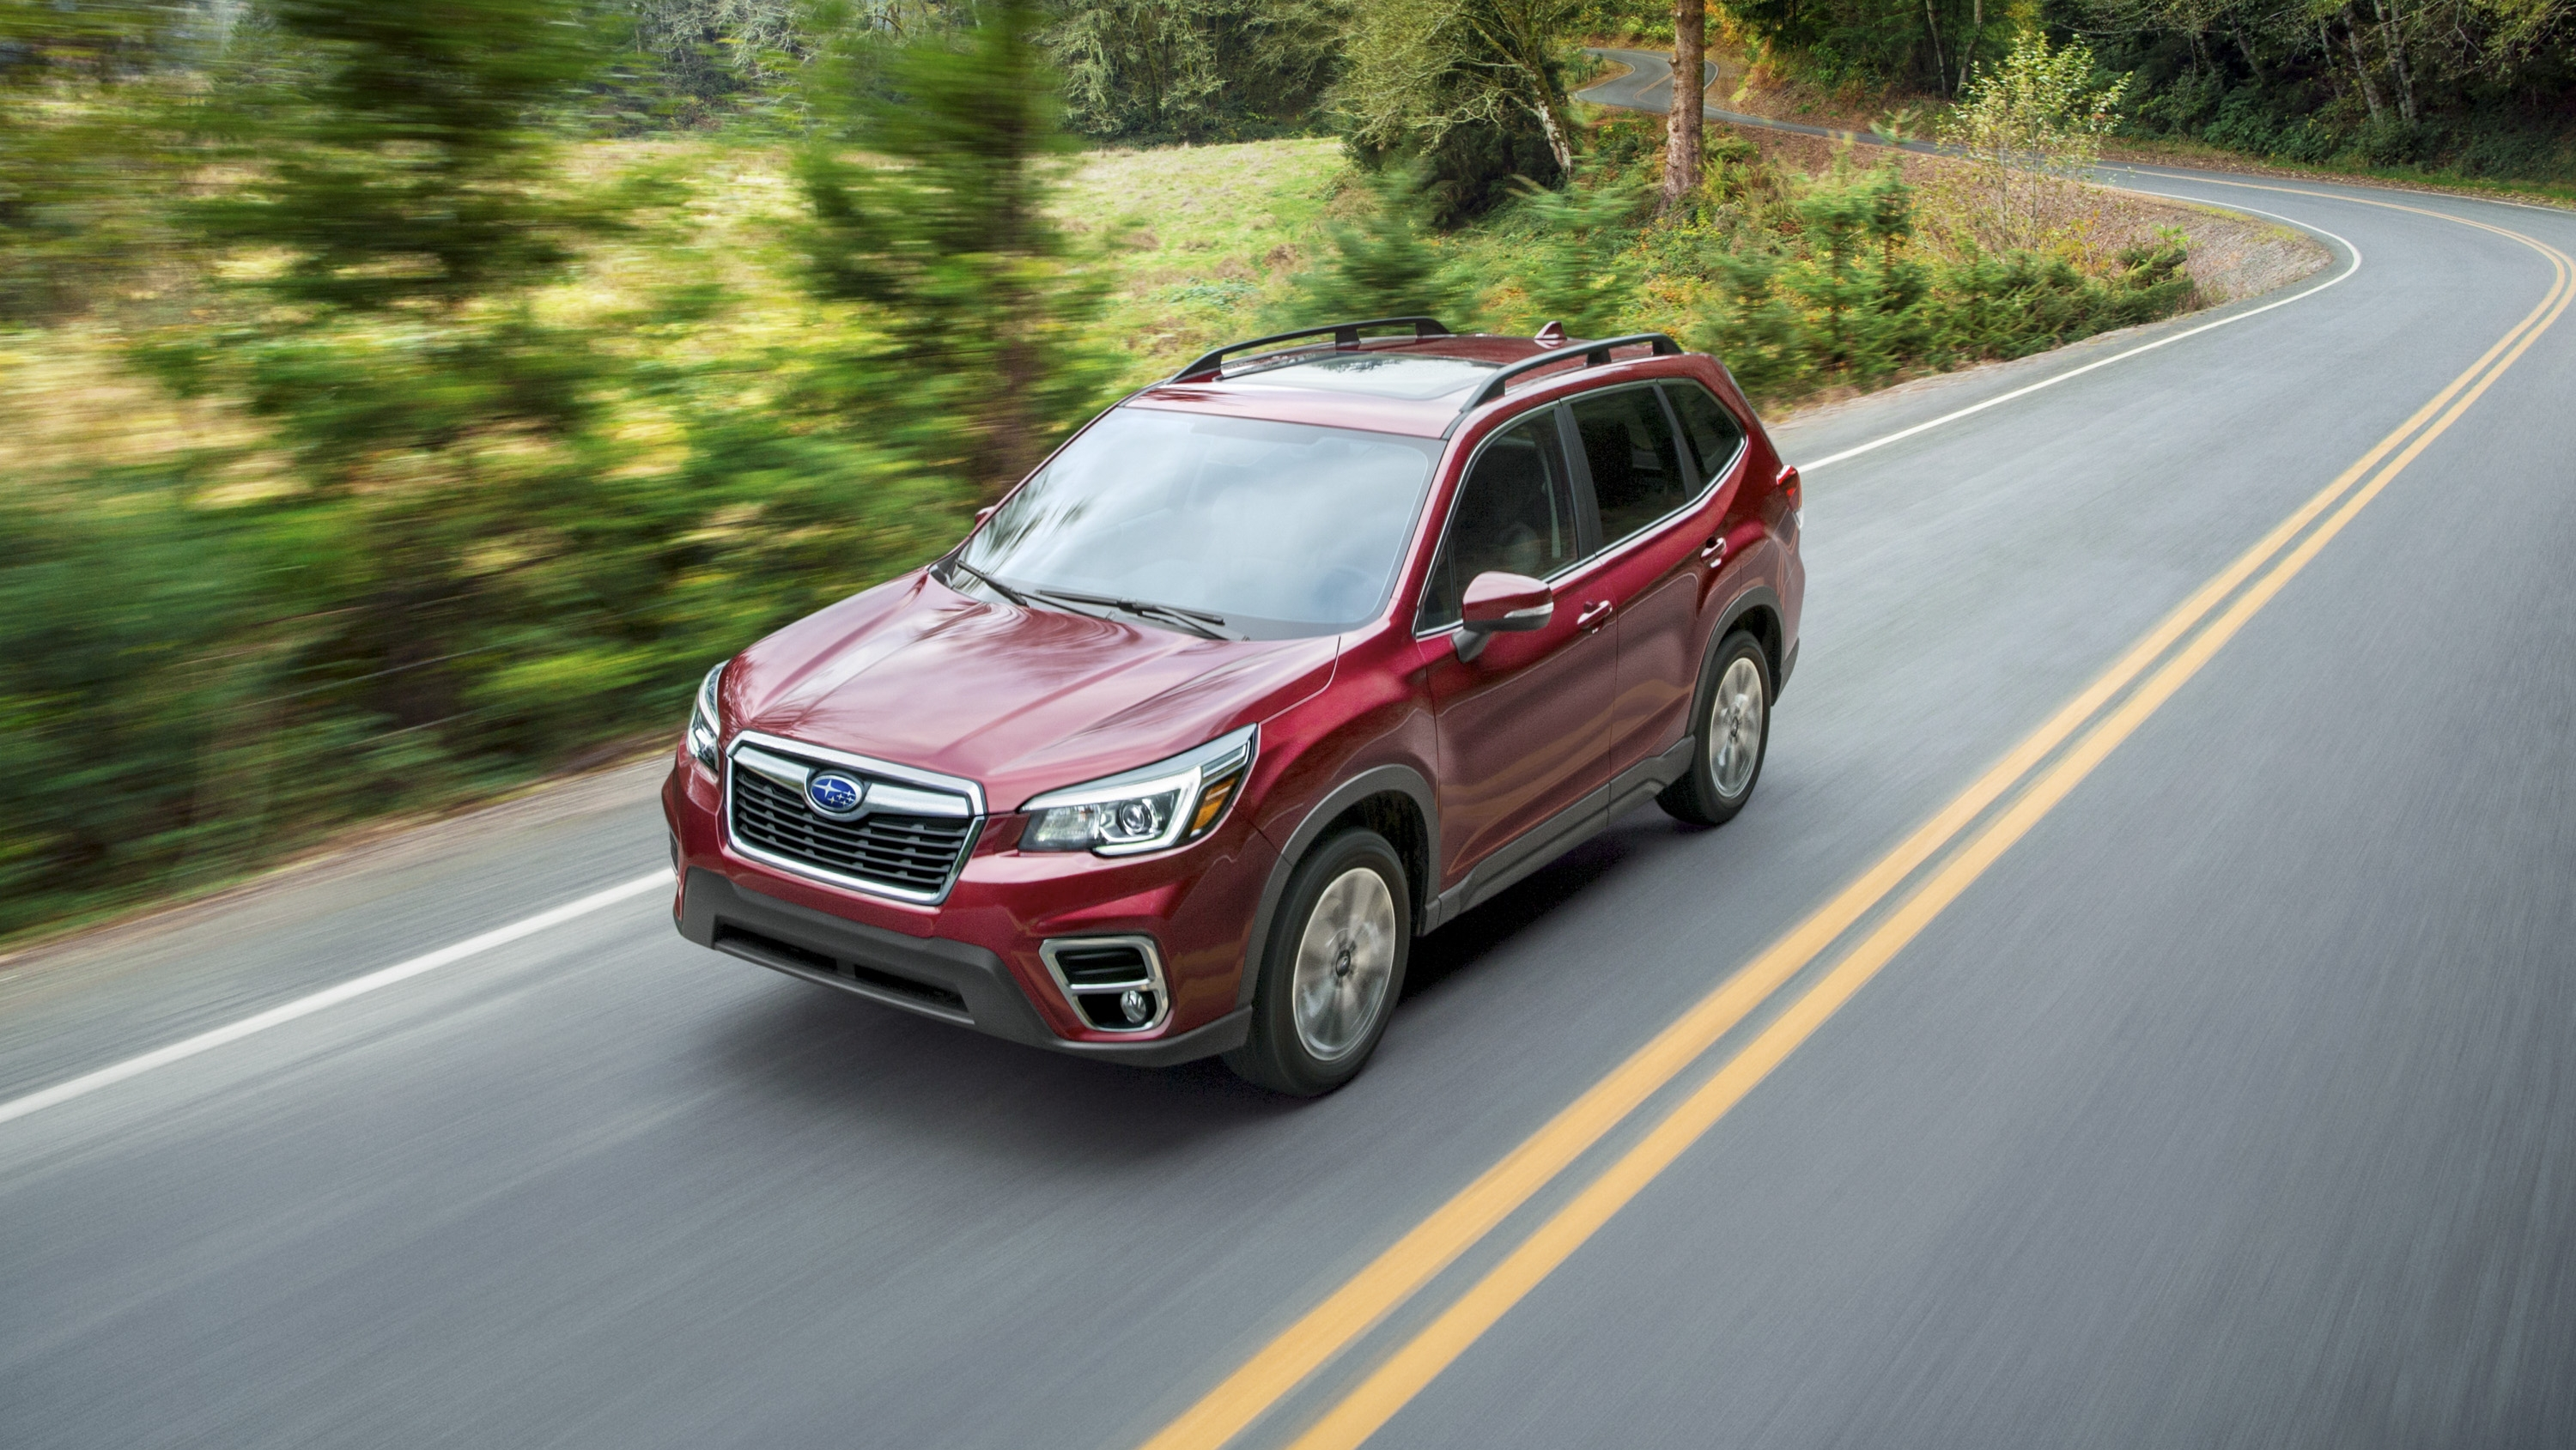 2019 Subaru Forester | Top Speed. »